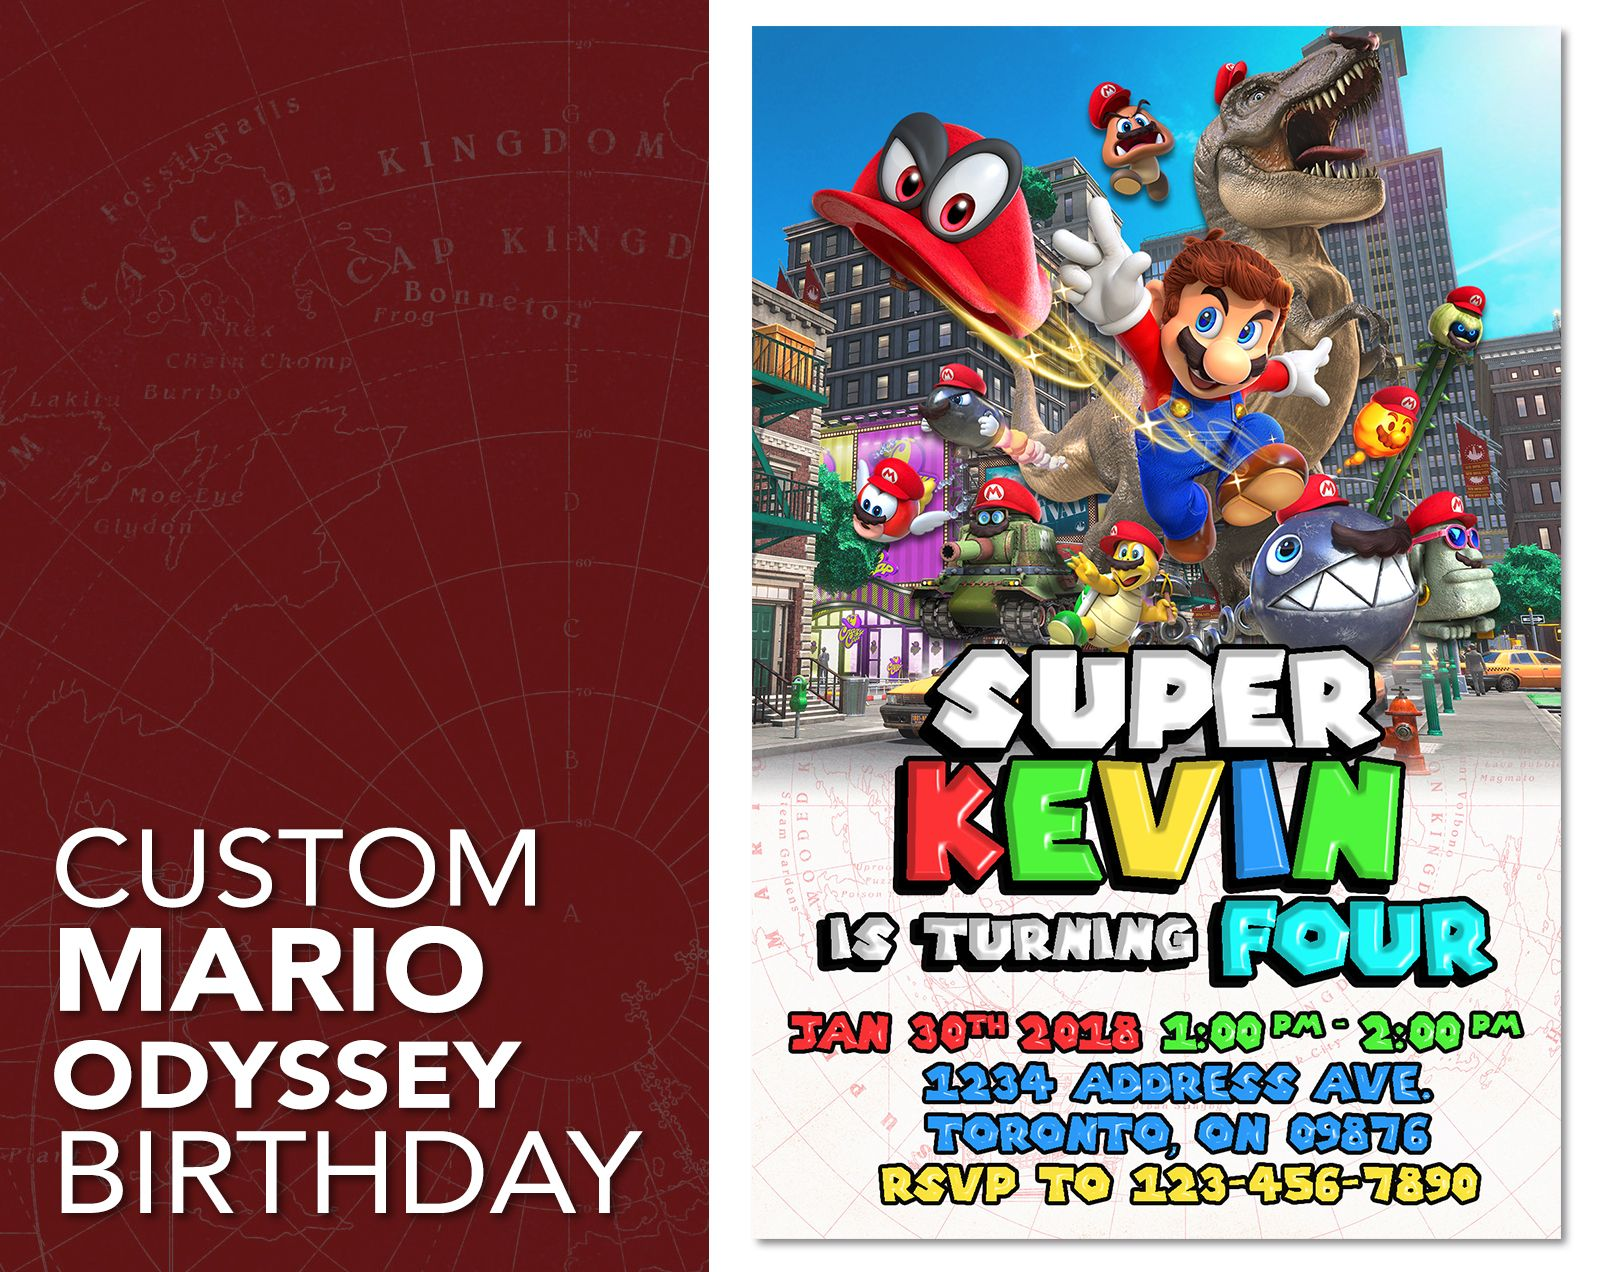 Design Websites Customized Super Mario Odyssey Birthday Invitations Get In Touch Contactijdesignsca